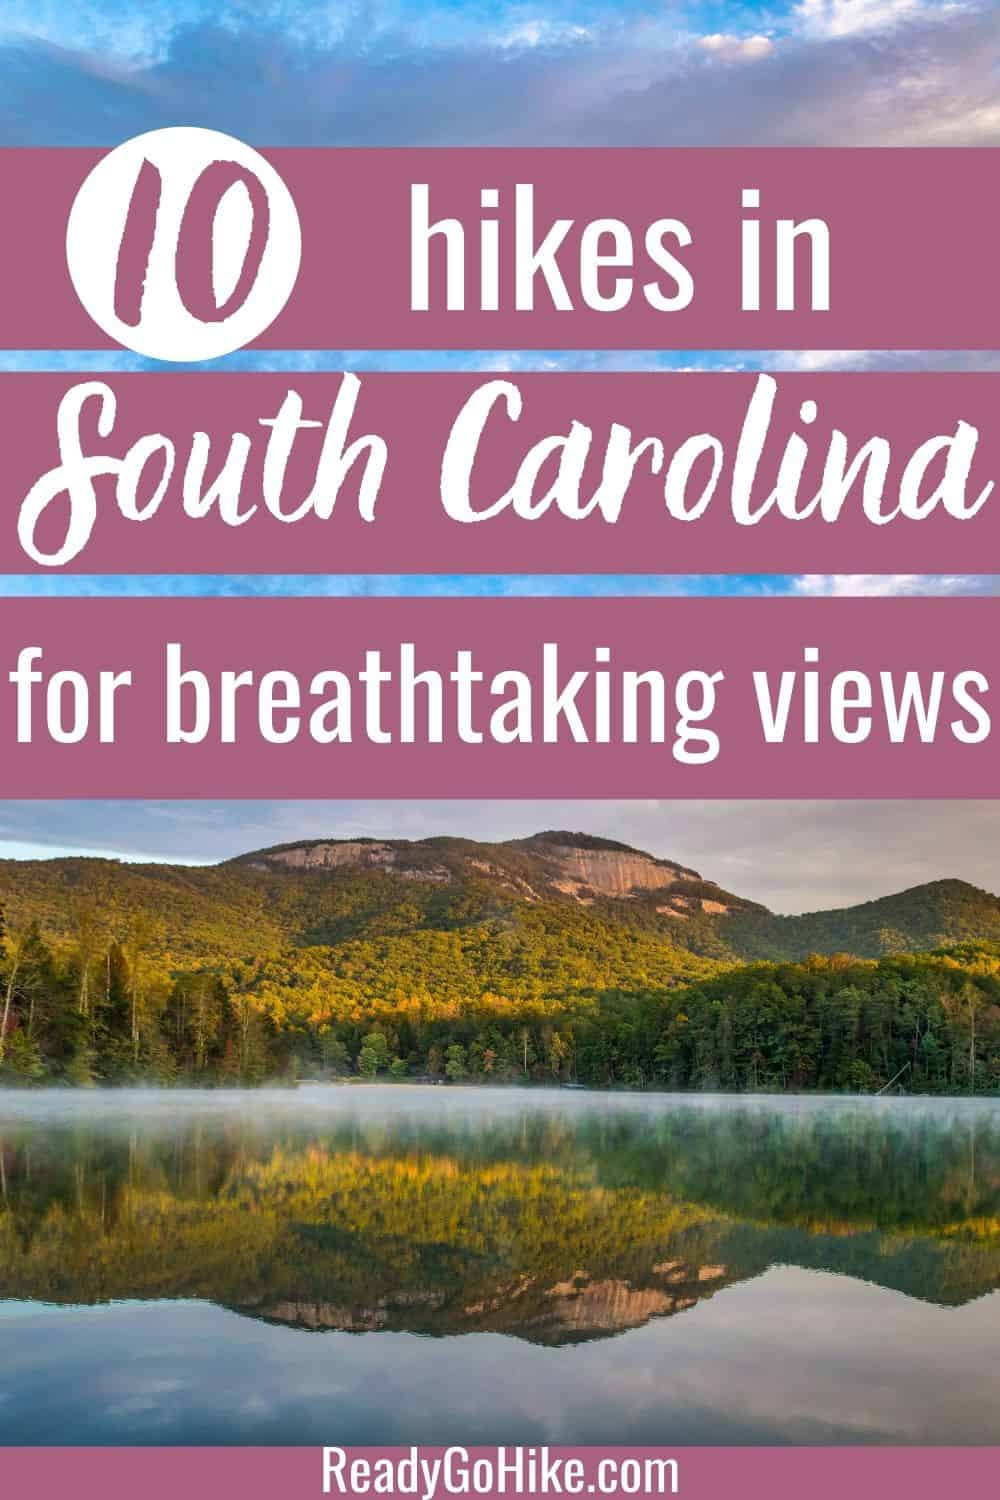 Table Rock State Park and Pinnacle Lake at sunrise with text overlay 10 Hikes in South Carolina for Breathtaking Views